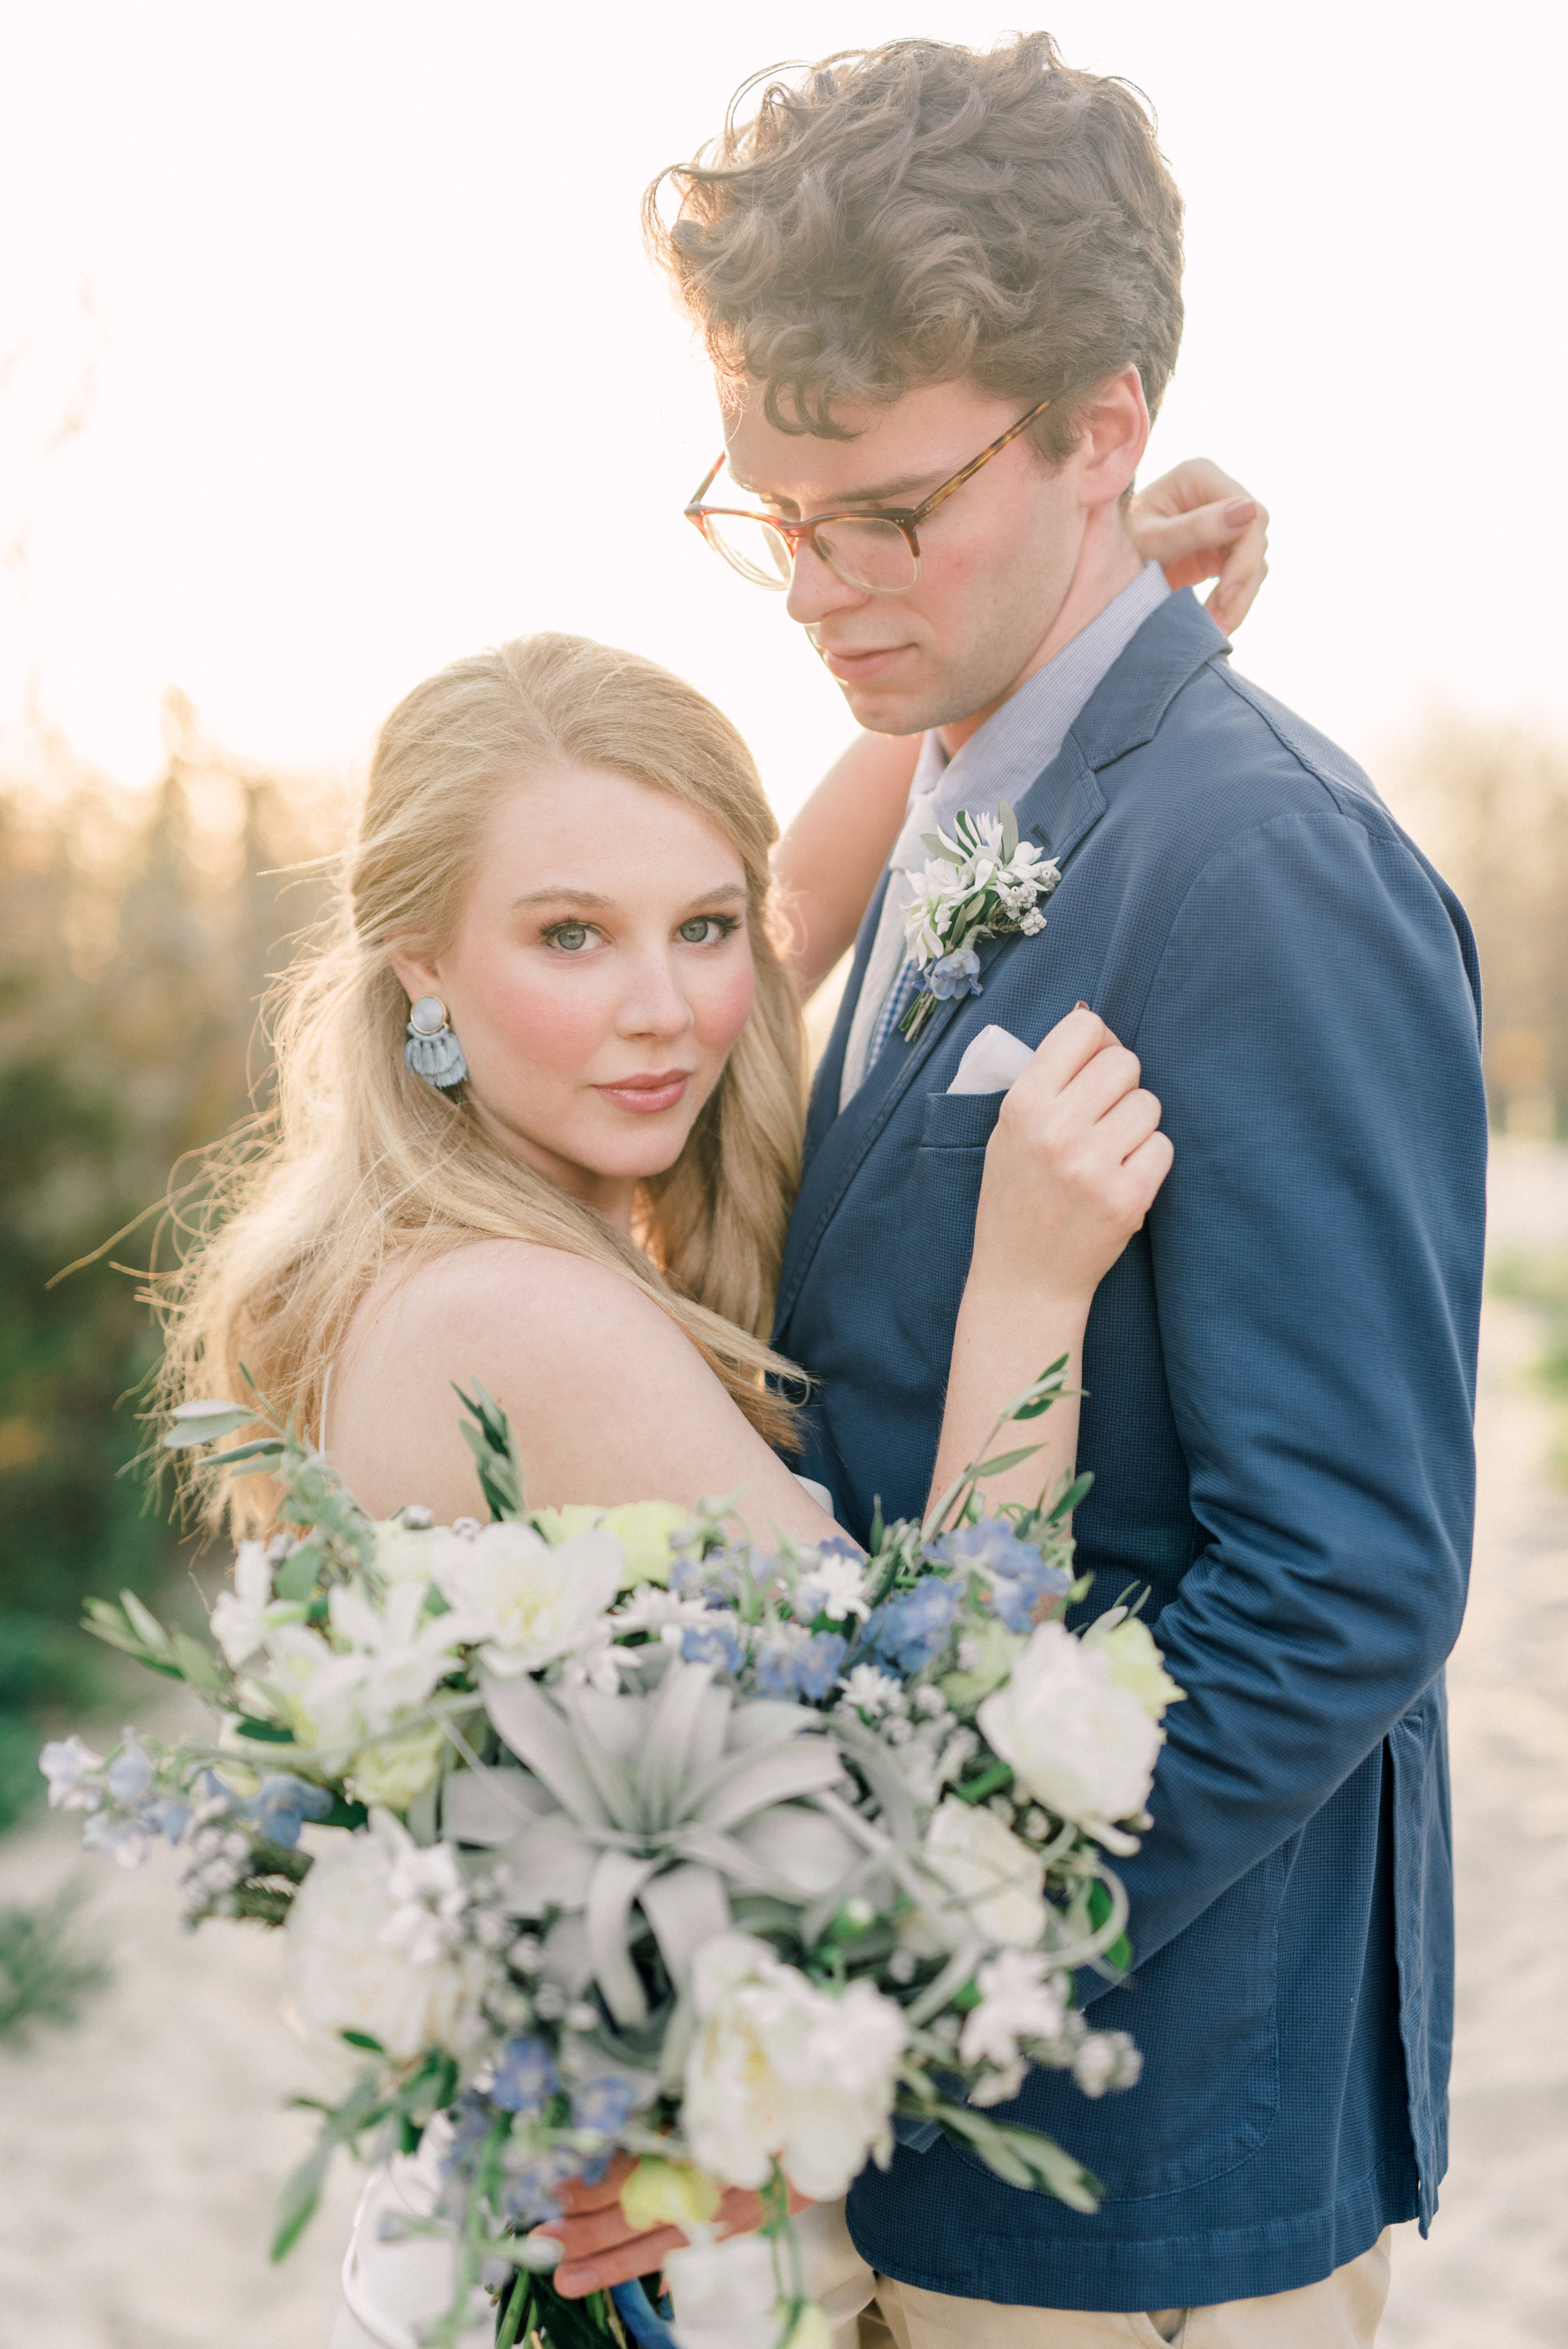 haley-richter-photography-clover-event-co-cape-may-new-jersey-wedding-elopement-at-congress-hall-sea-glass-inspired-064.jpg